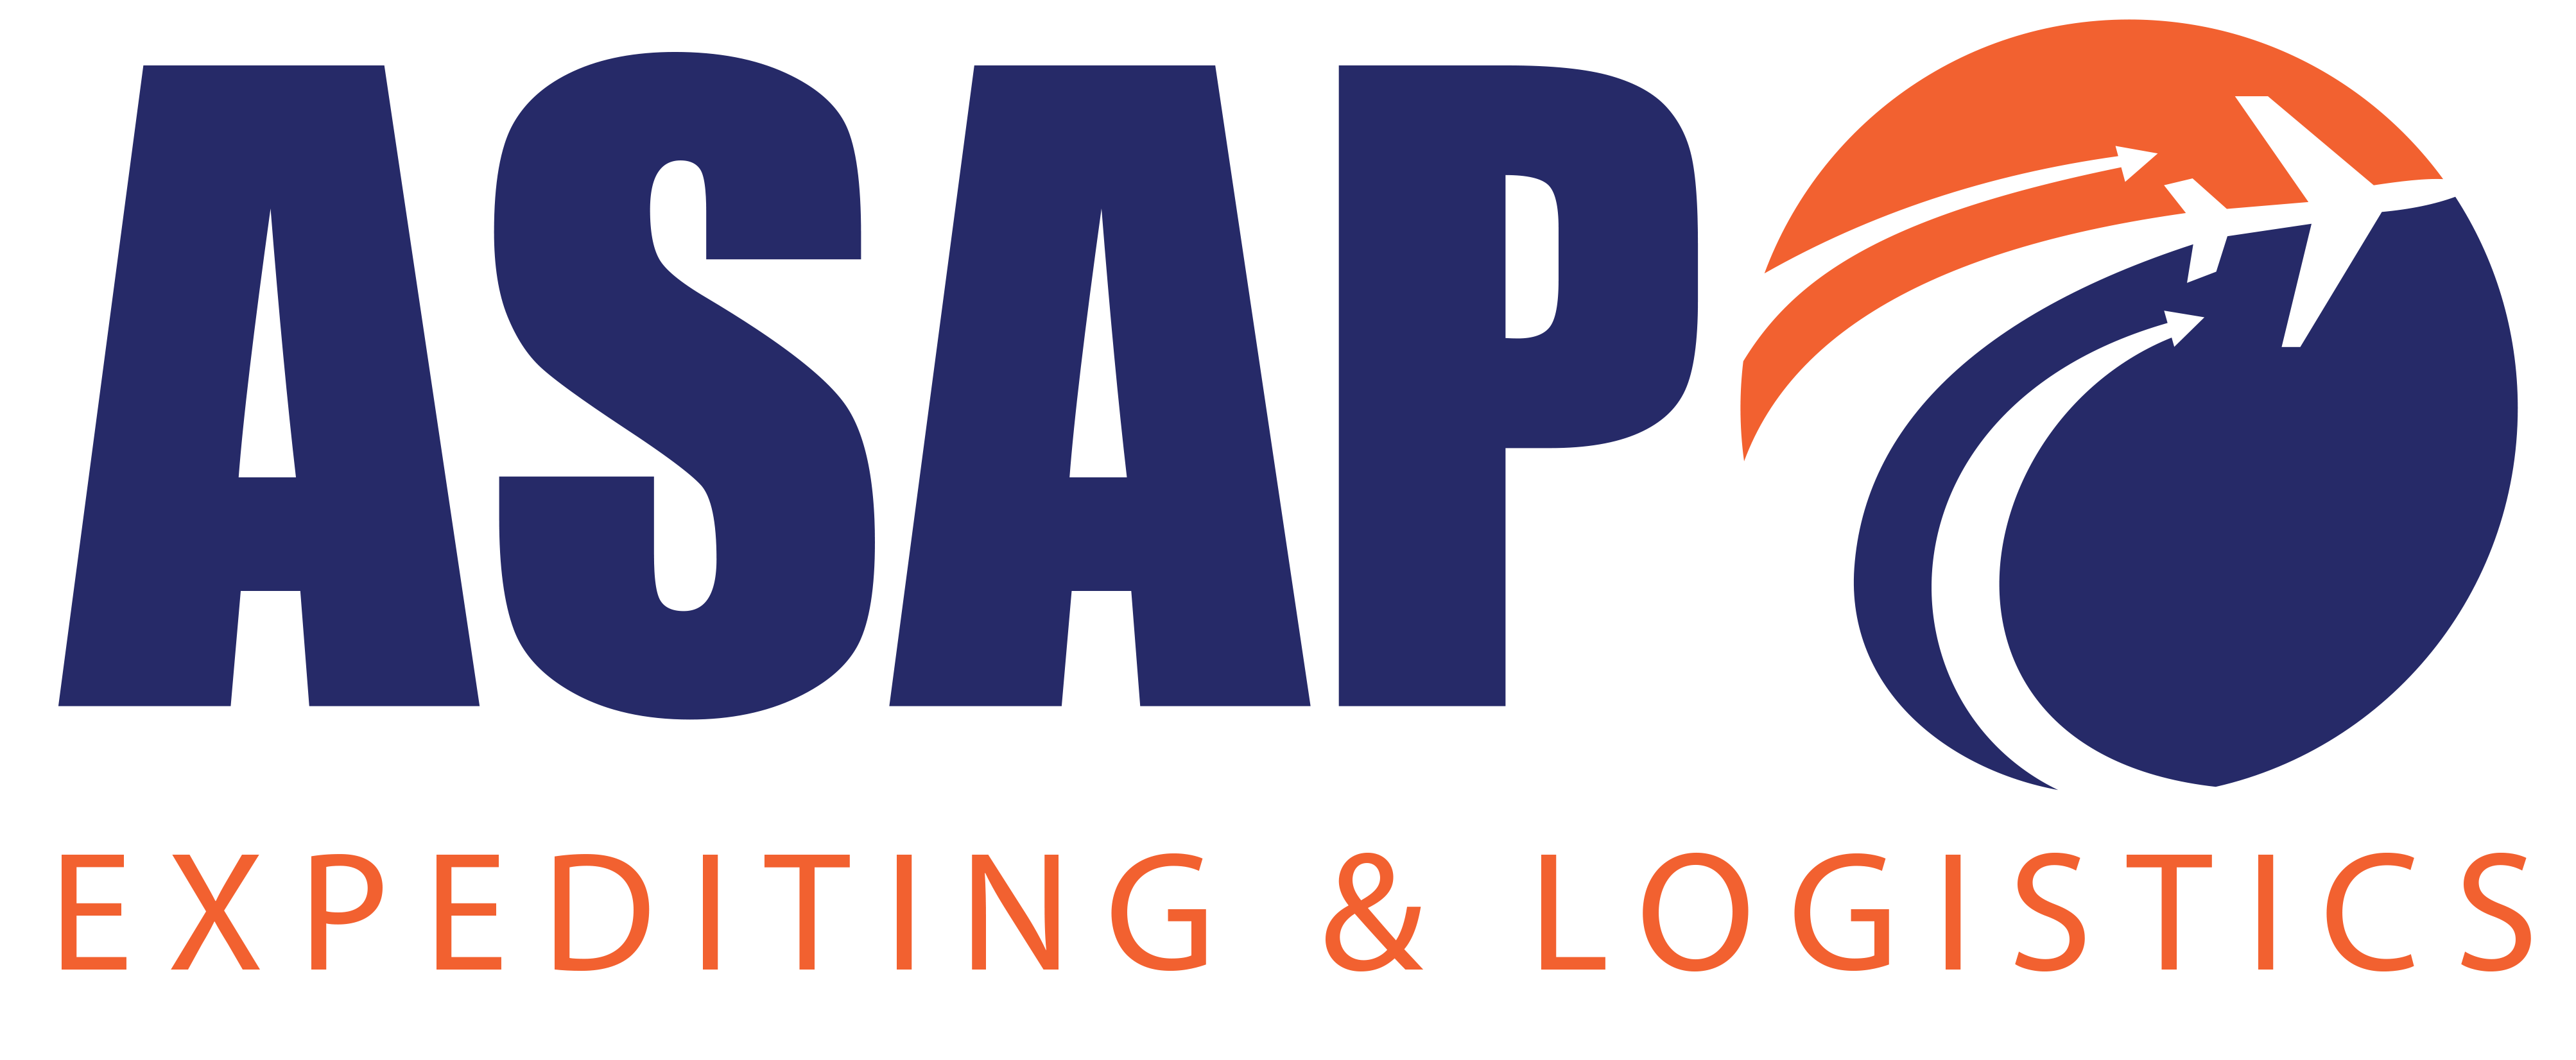 ASAP Expediting & Logistics - Anytime Anywhere Any Situation